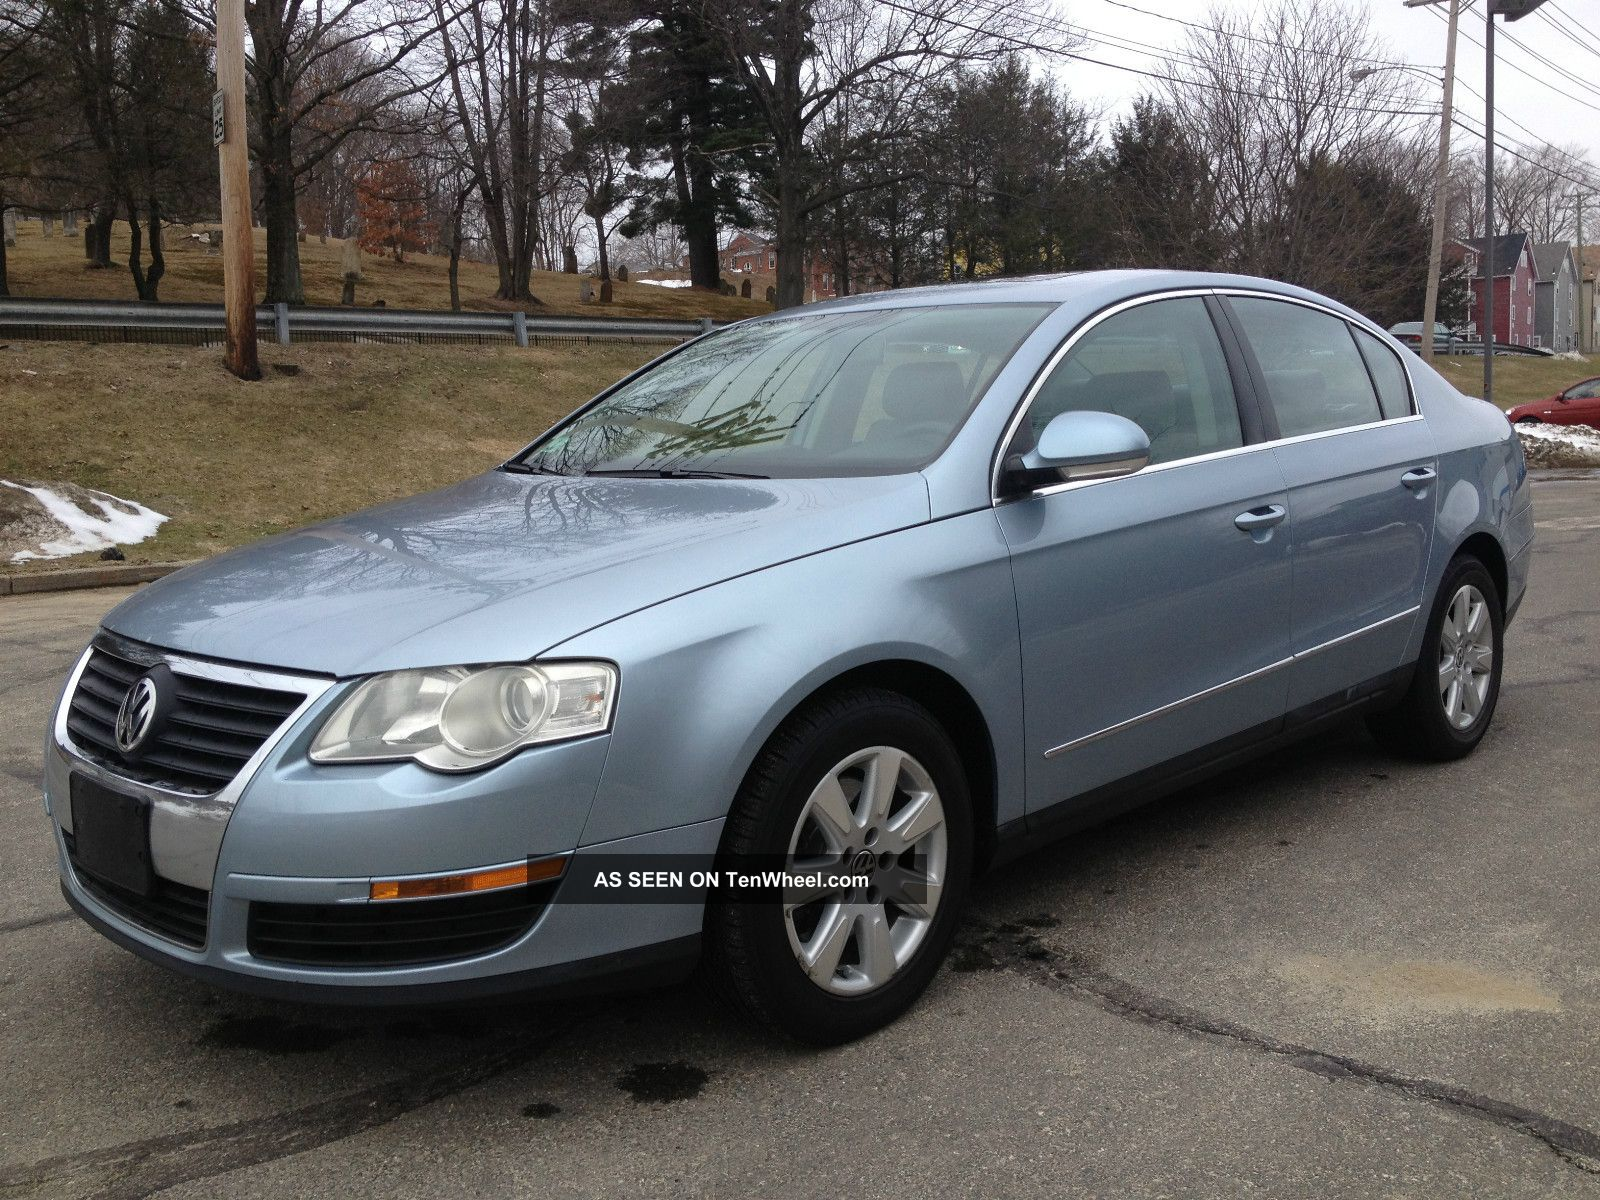 2006 vw passat 4 cyl turbocharged fully loaded. Black Bedroom Furniture Sets. Home Design Ideas